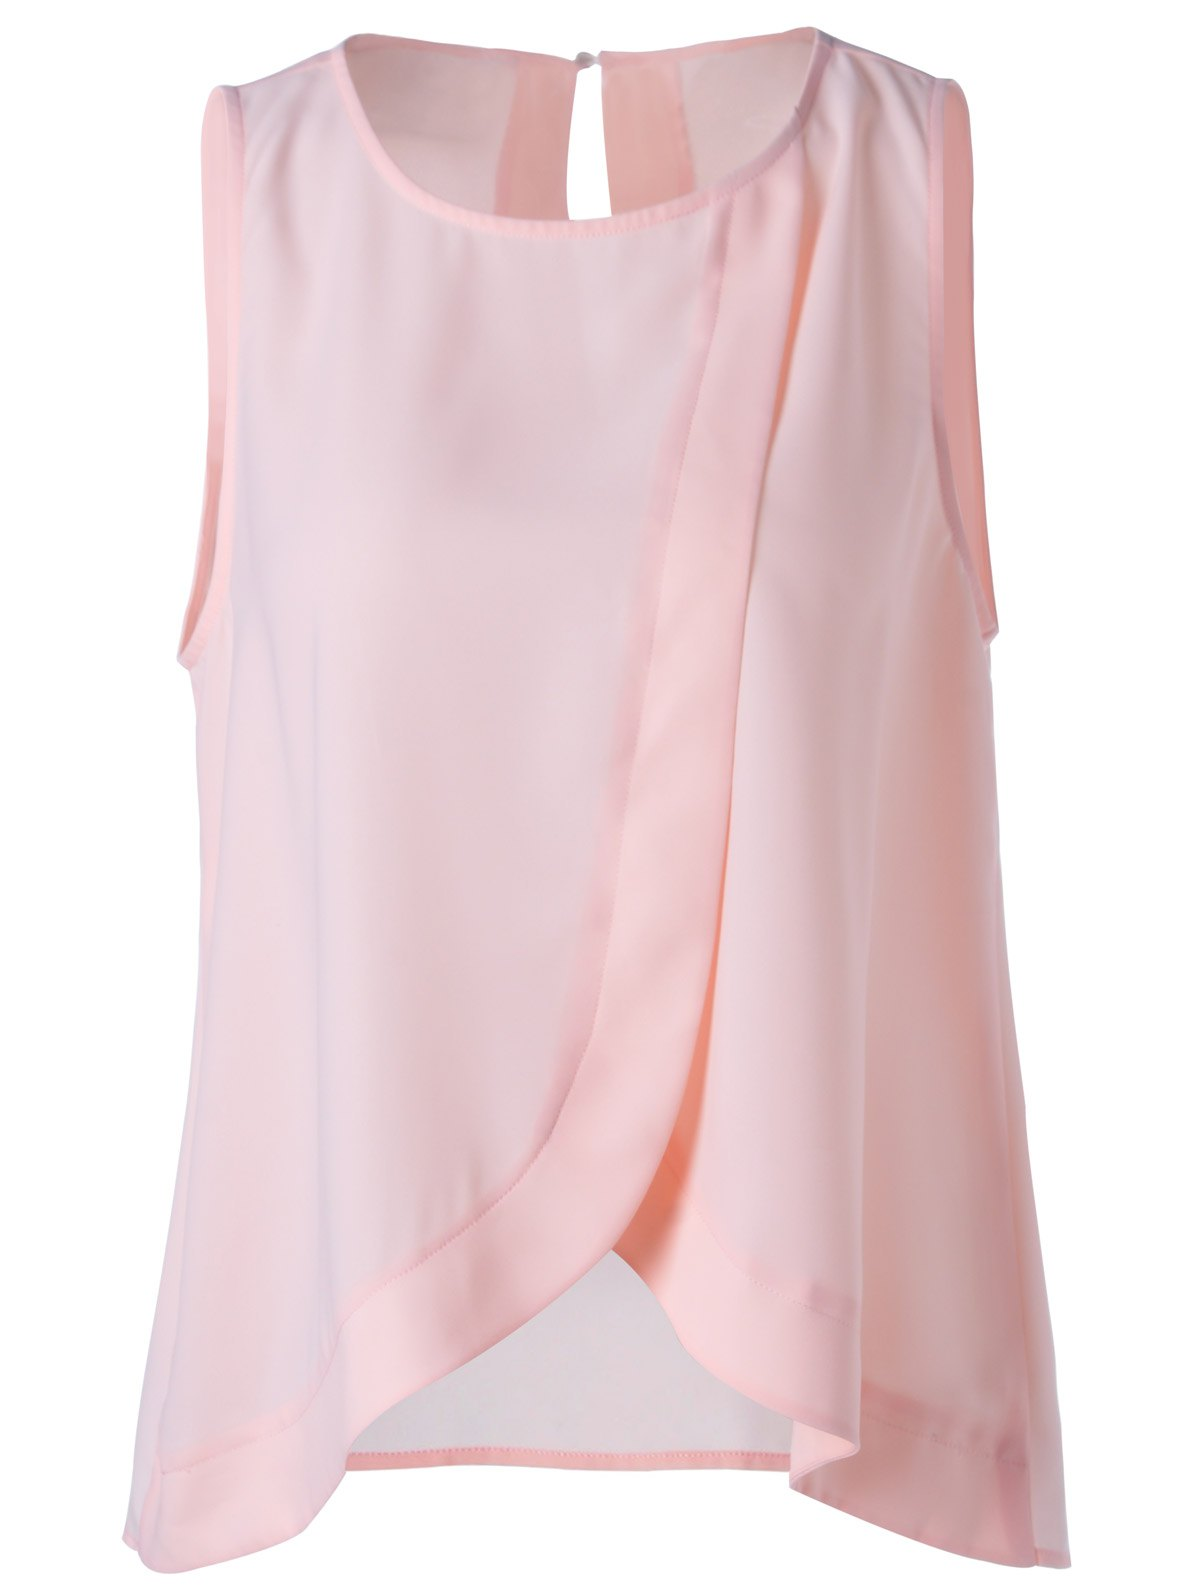 Sweet Scoop Neck Slimming Tulip Blouse For Women - LIGHT PINK M